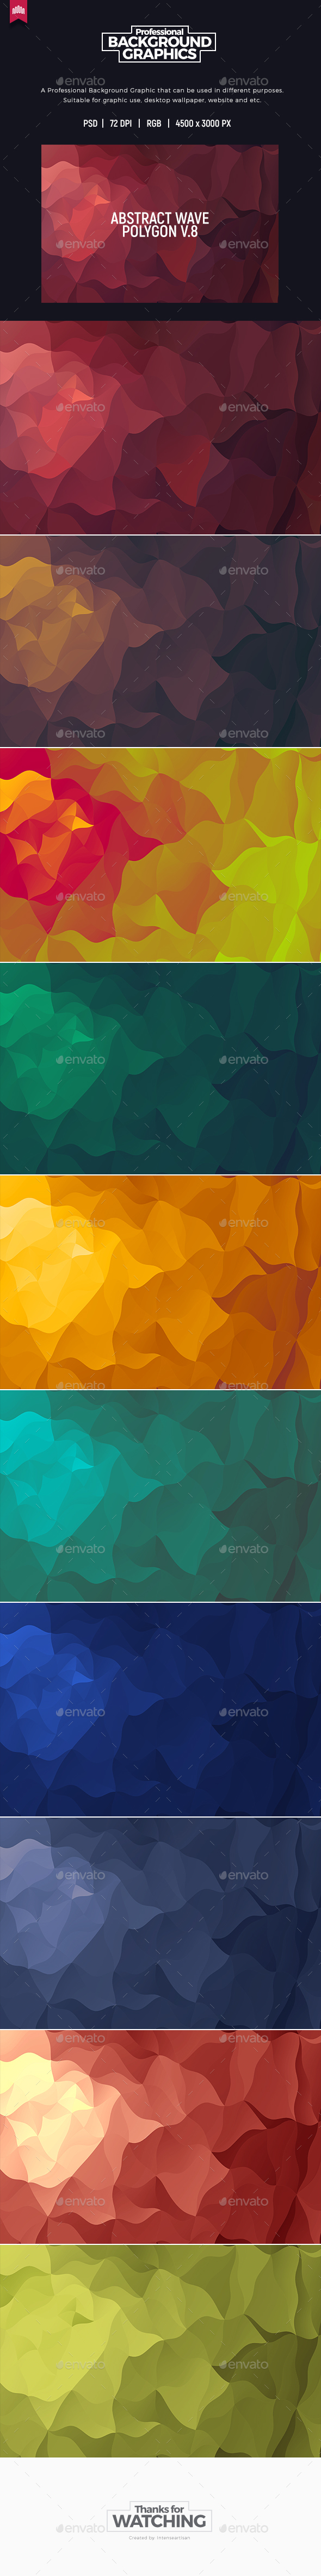 Abstract Polygon V.8 - Background - Abstract Backgrounds